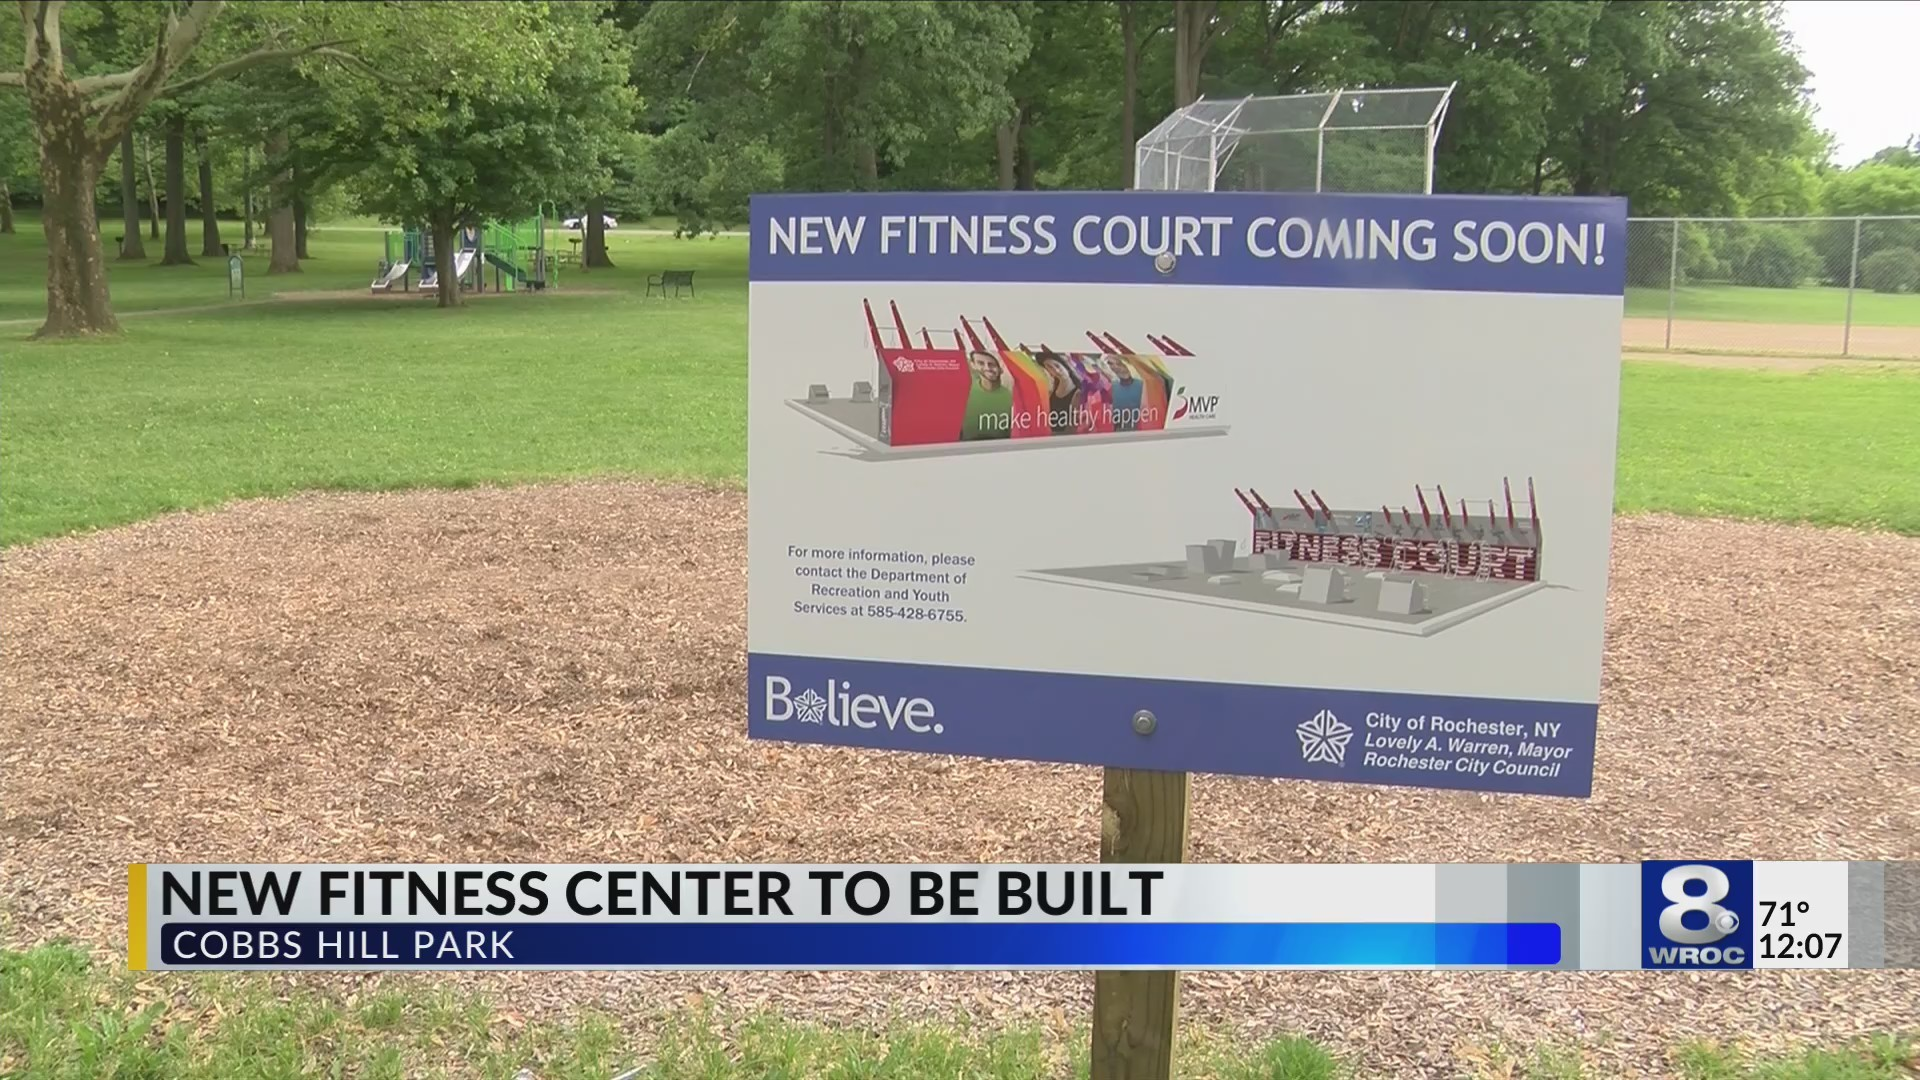 Fitness court coming to Cobb's Hill Park